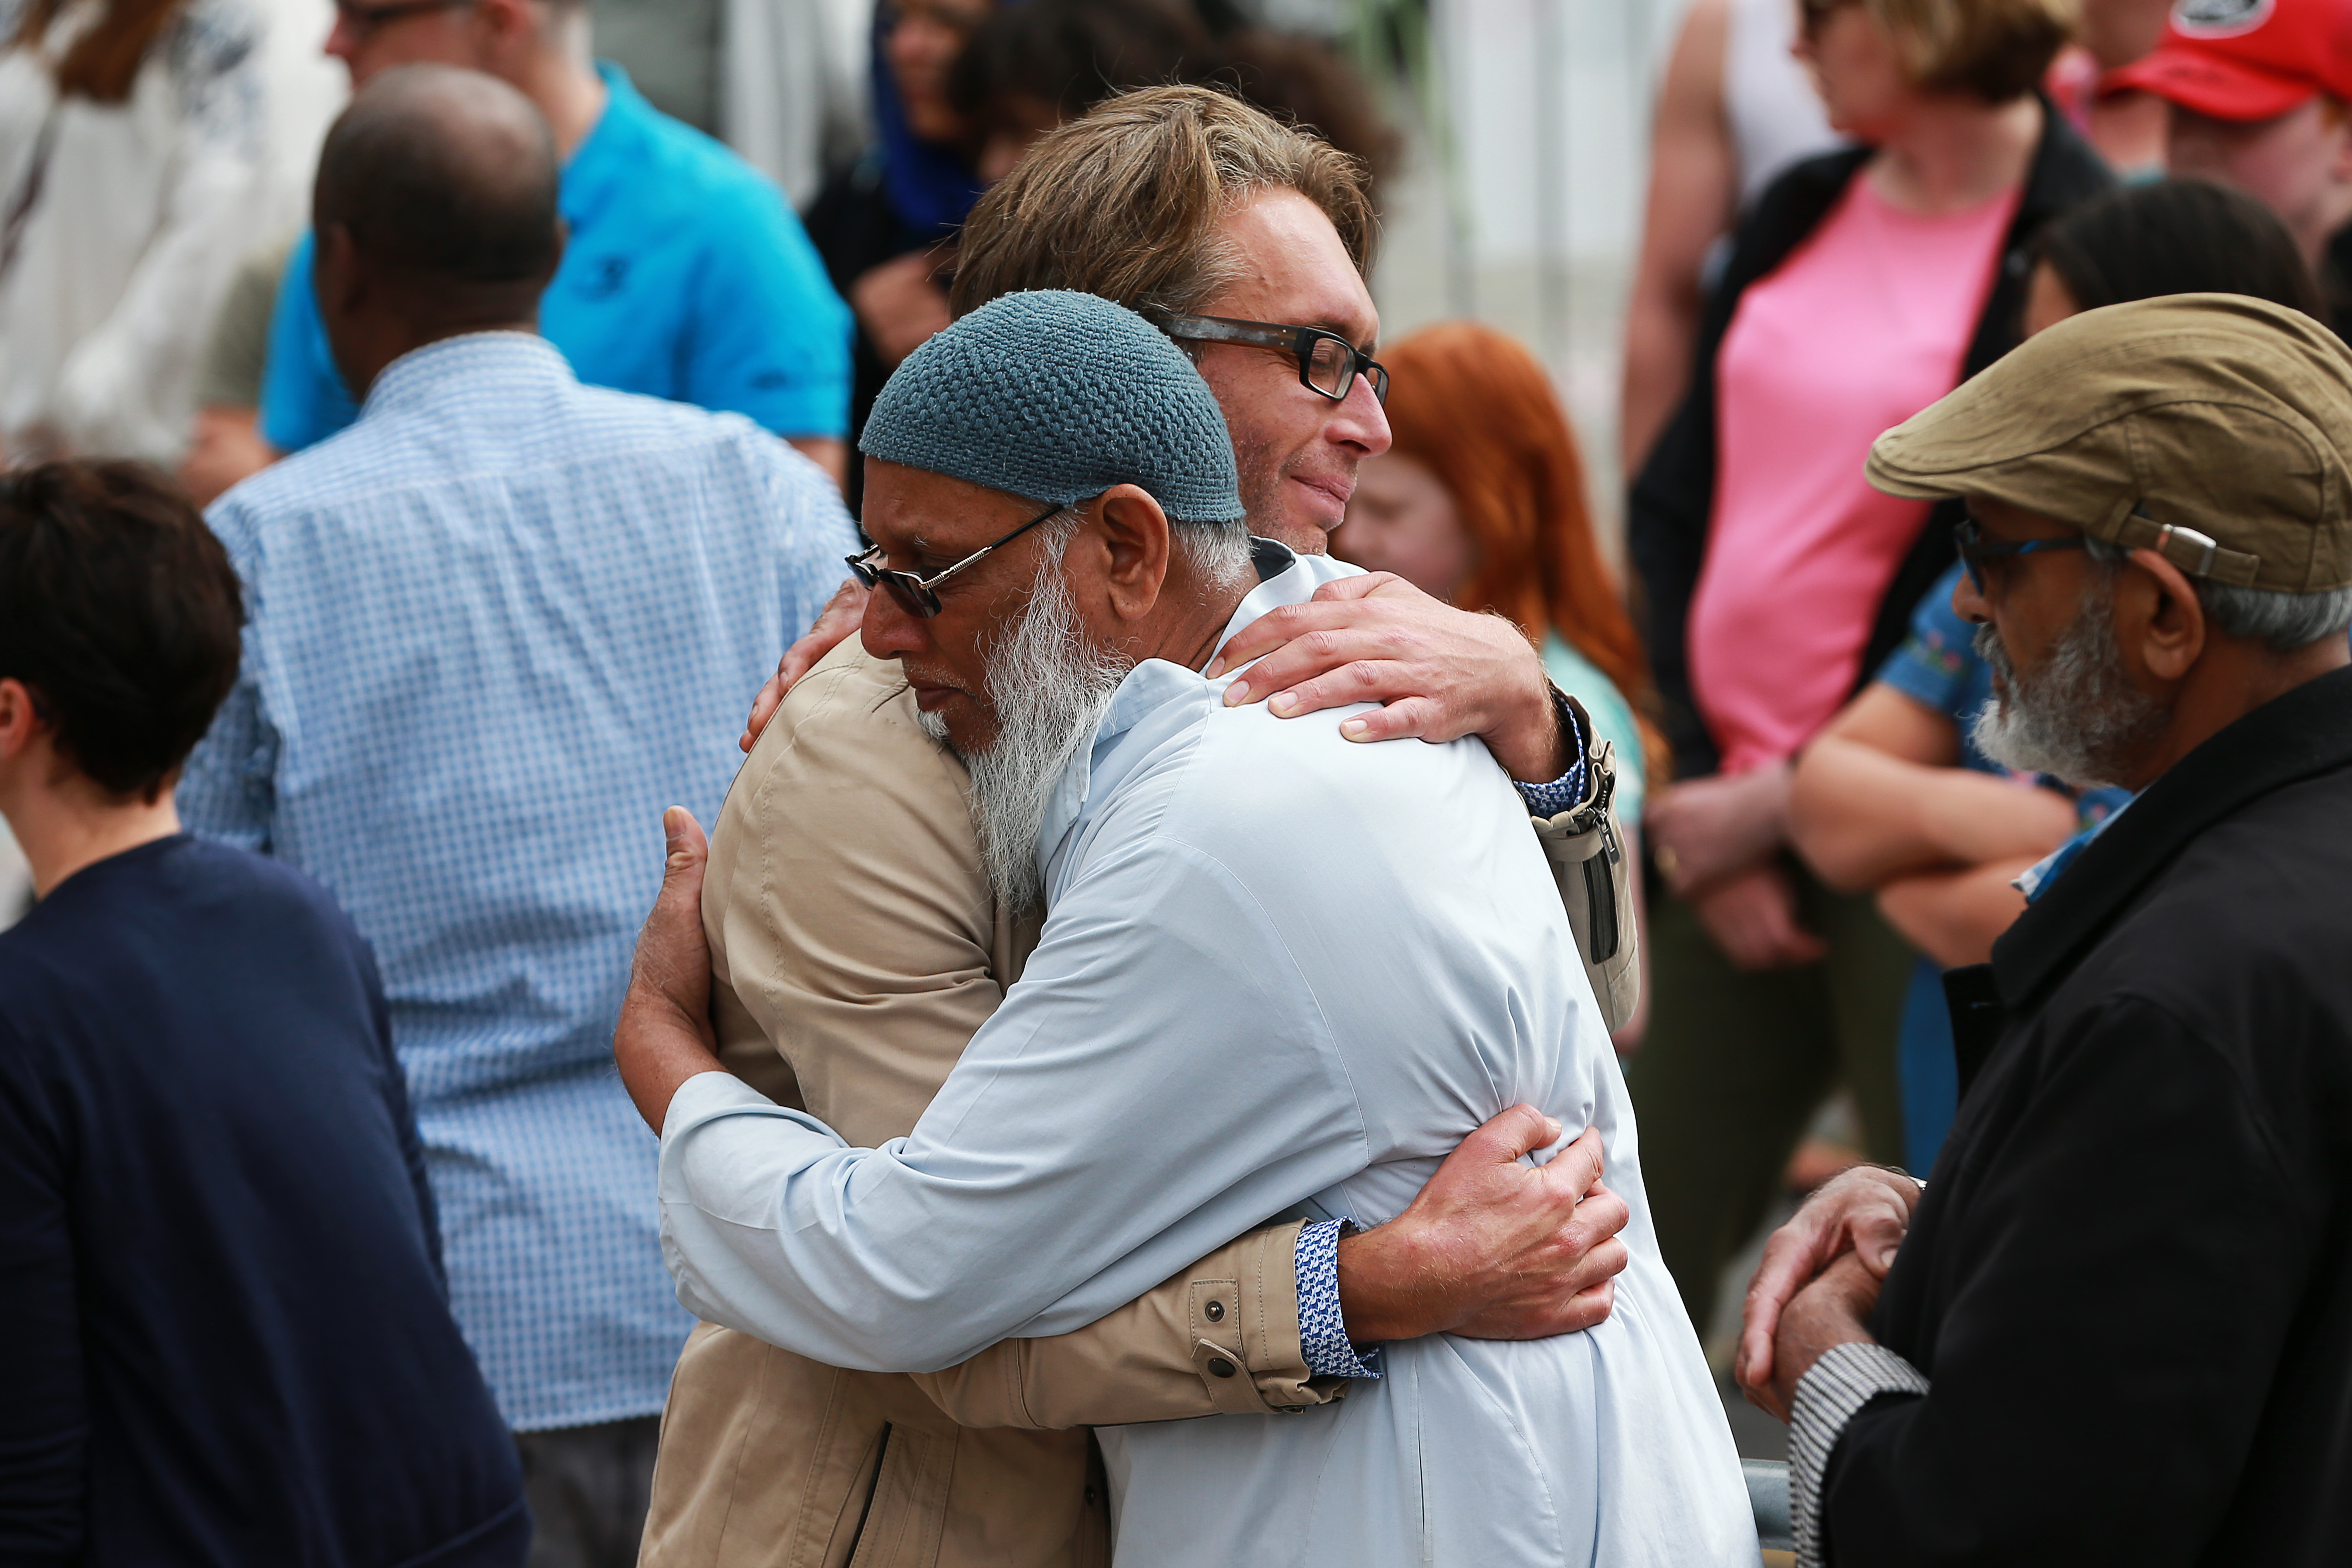 A member of the public and a mosque-goer embrace at the Kilbirnie Mosque on March 17, 2019, in Wellington, New Zealand. (Getty)